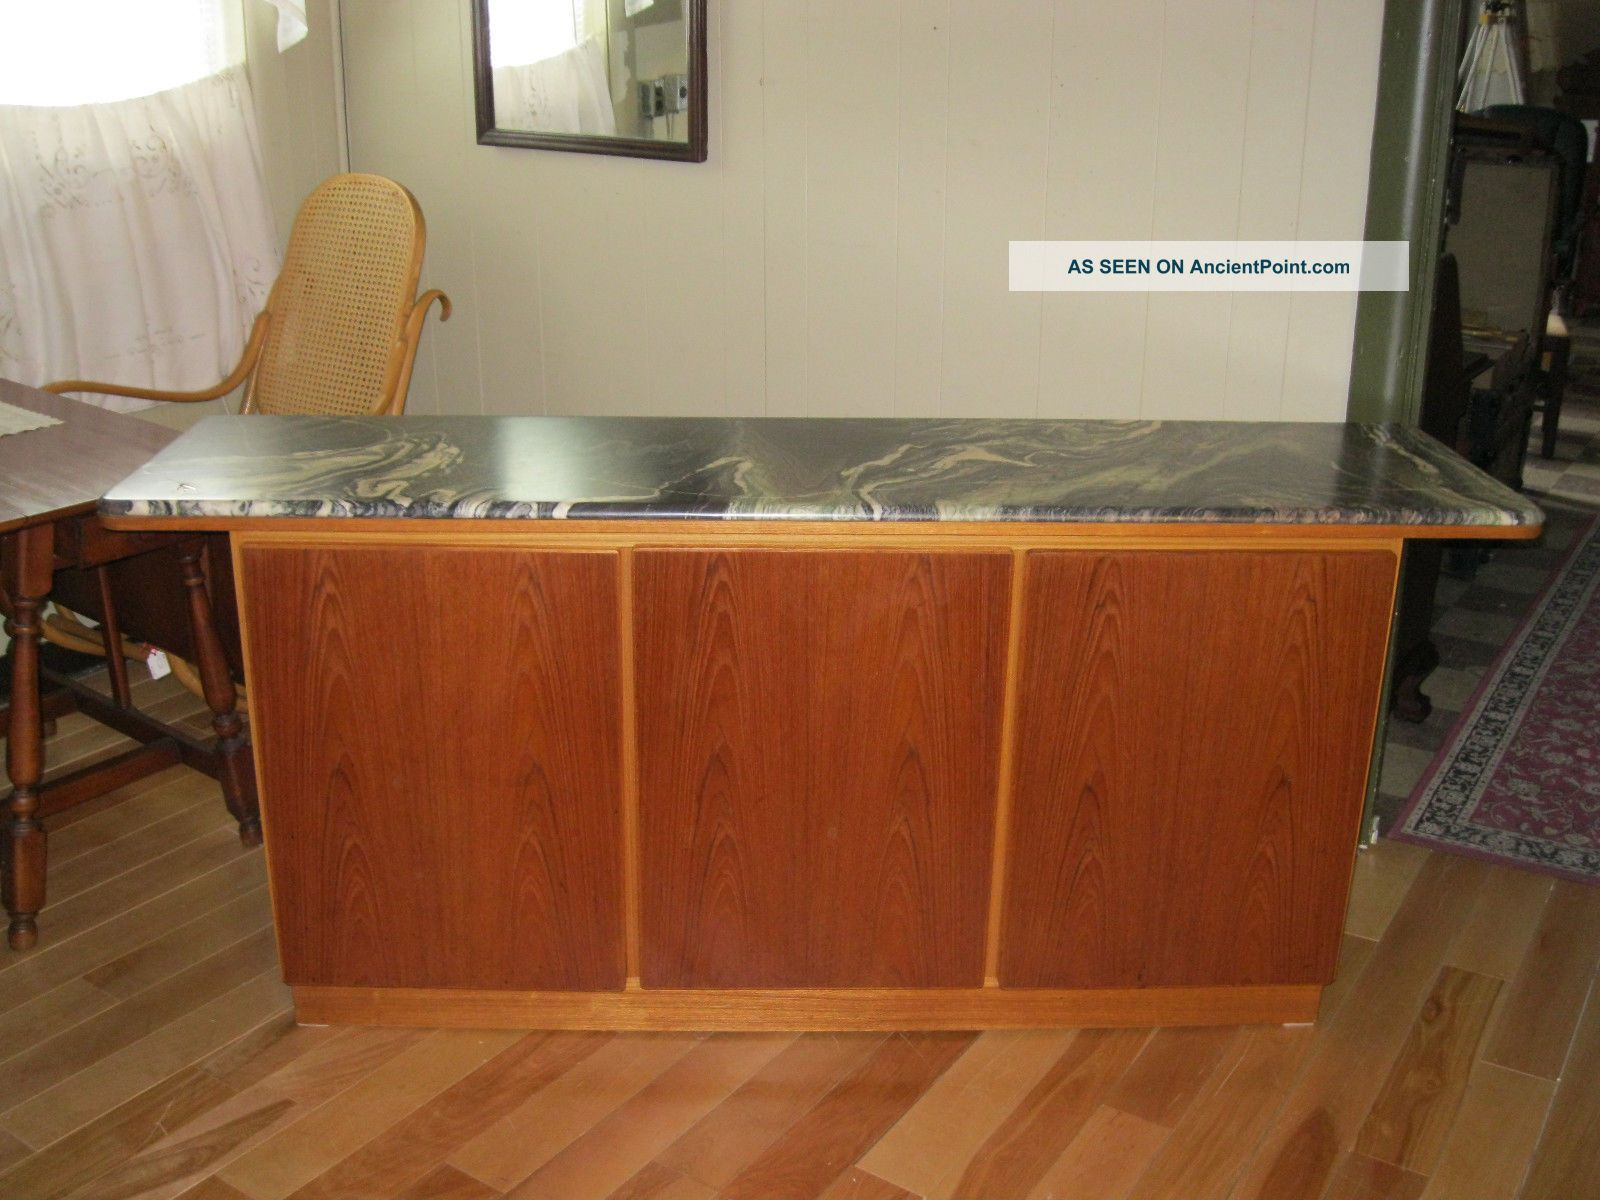 Danish Mid Modern Credenza Sideboard By Skovby - 00568 Post-1950 photo